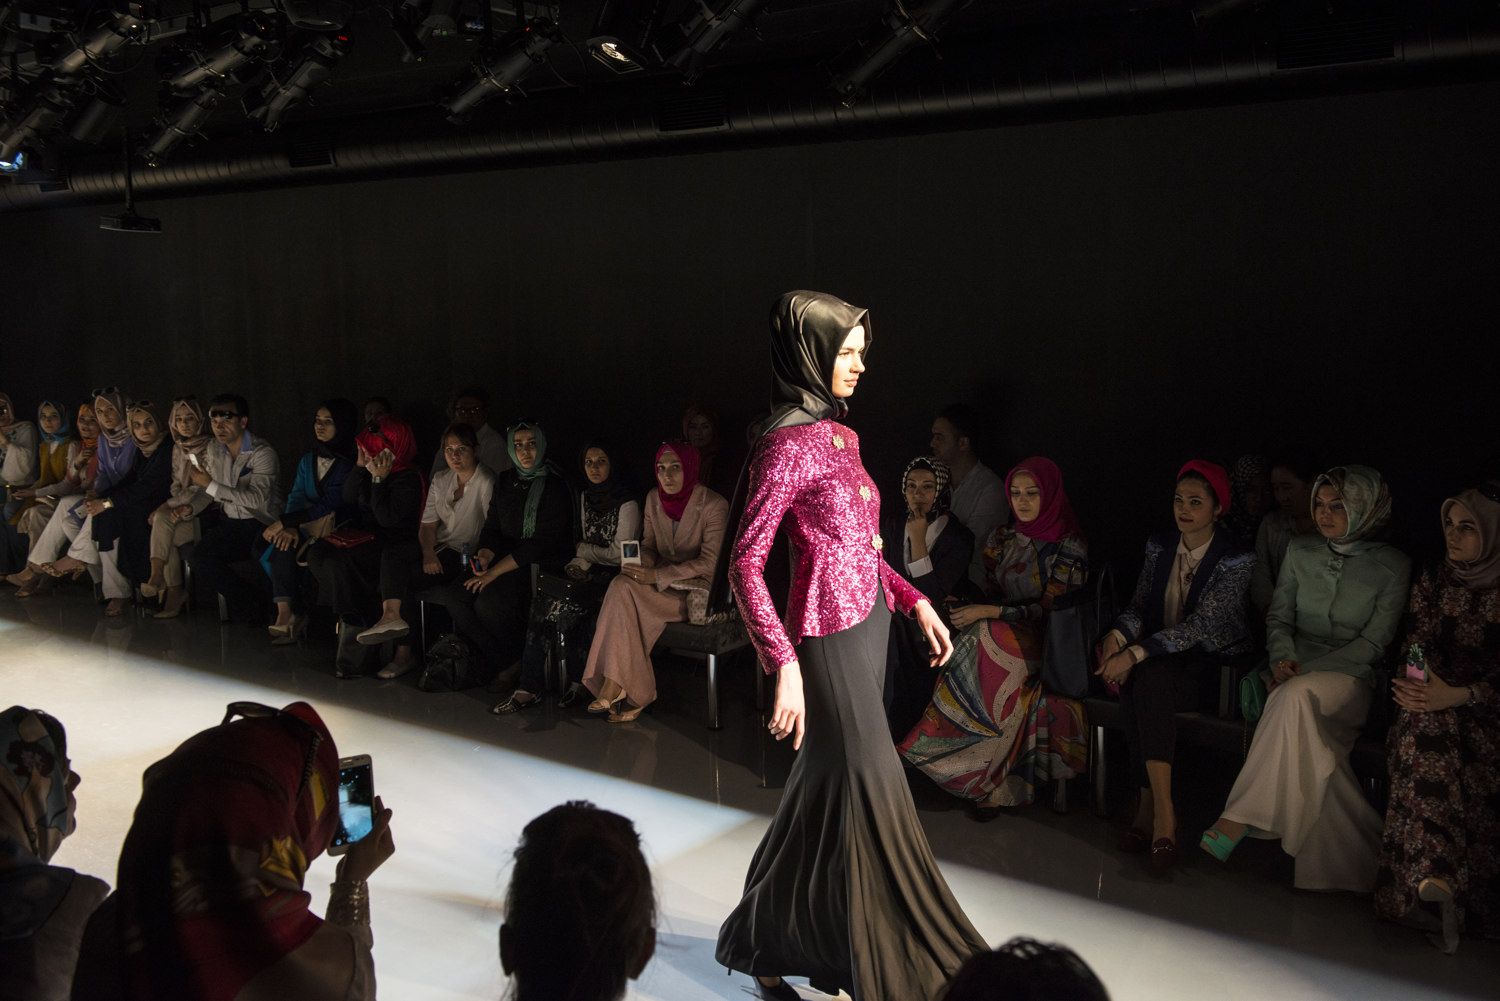 Images from the Modanisa fashion show on May 28th, 2014 in Istanbul, Turkey.